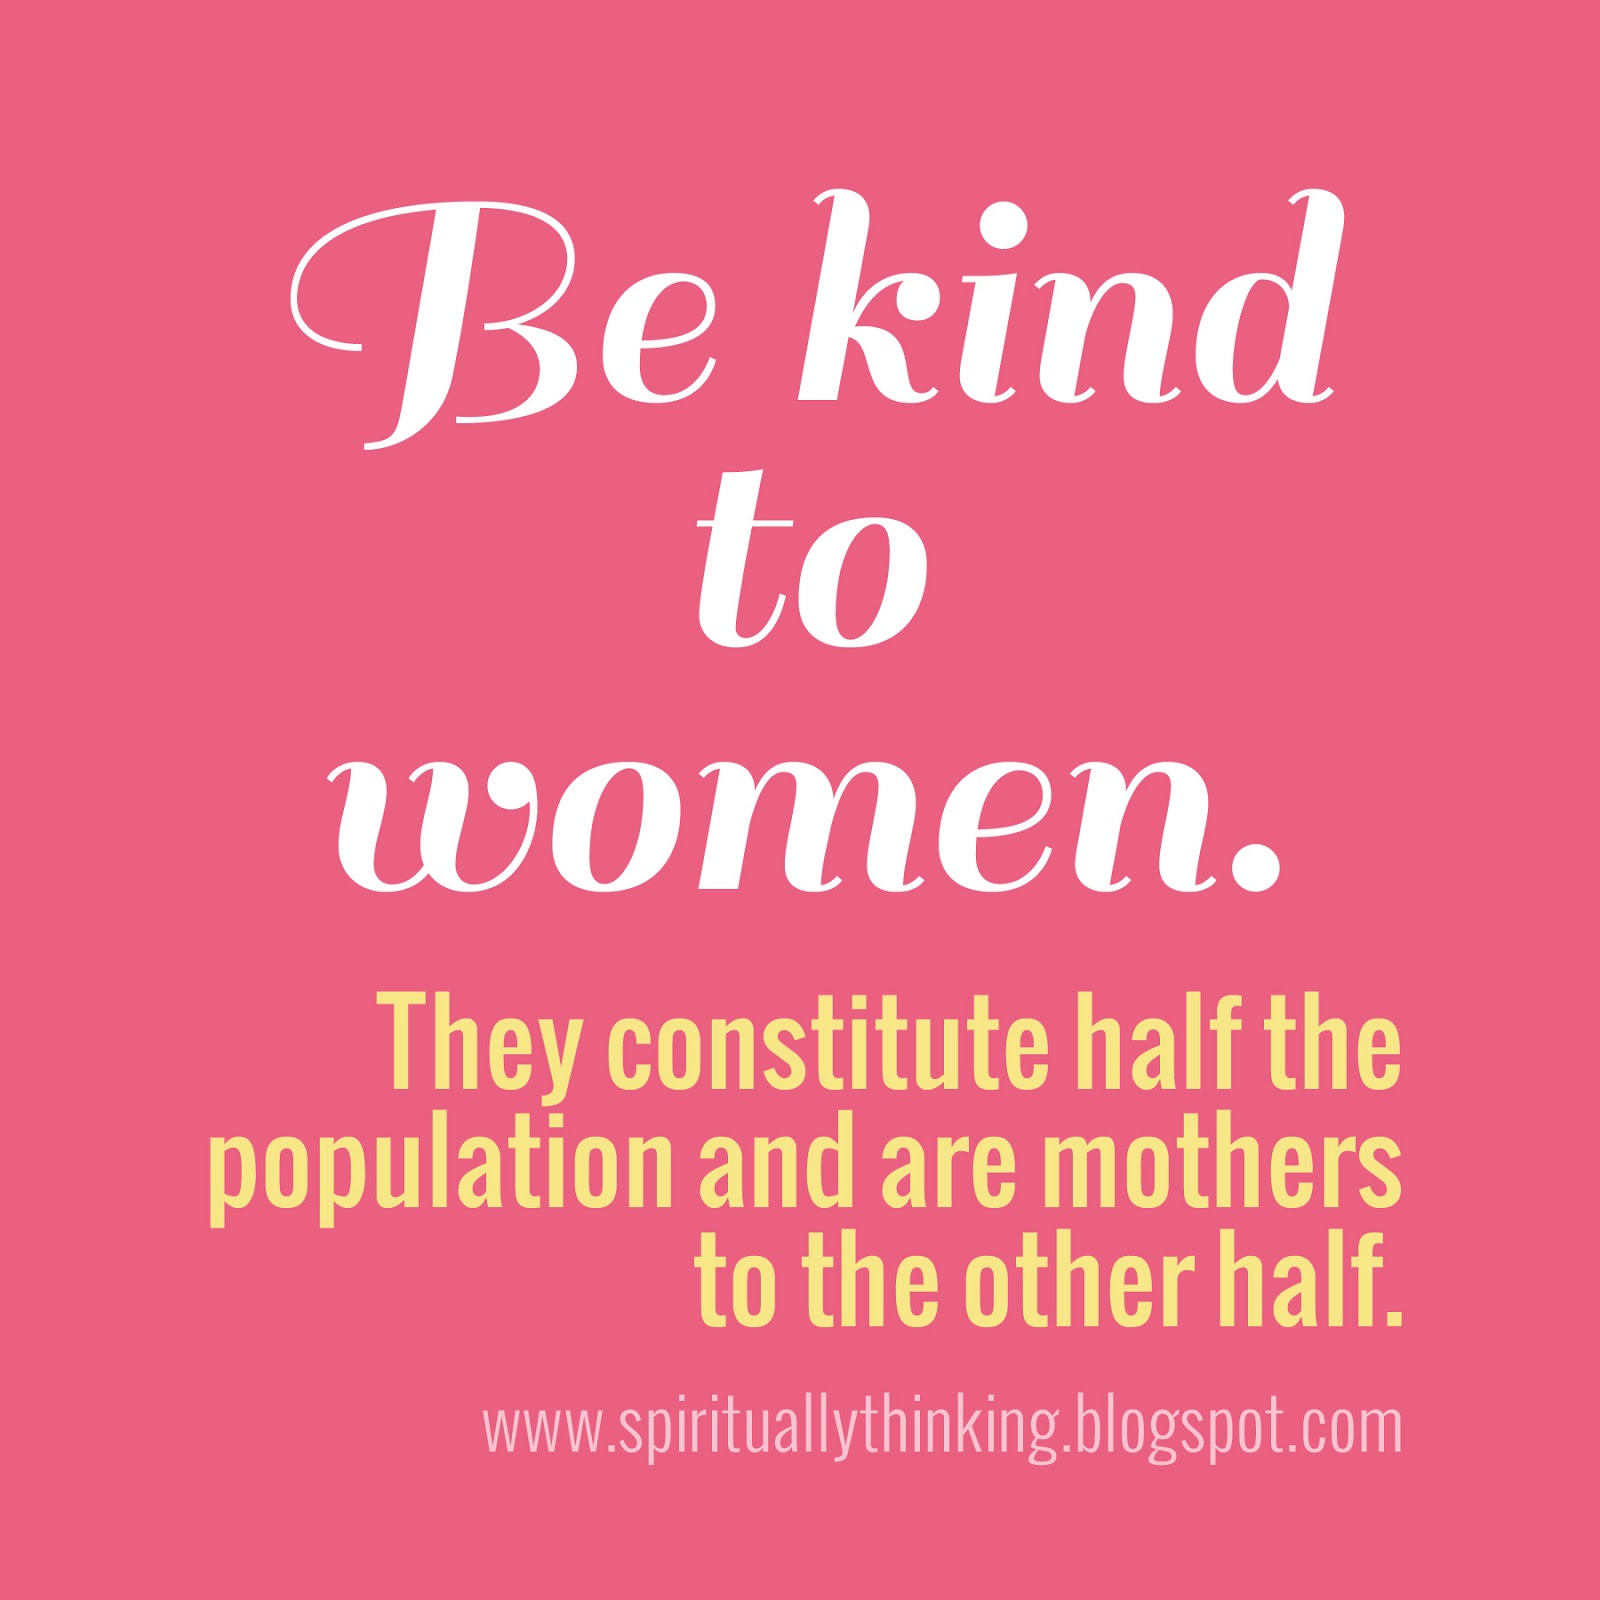 Quotes For Women And Spiritually Speaking Be Kind To Women  Happy Mother's Day